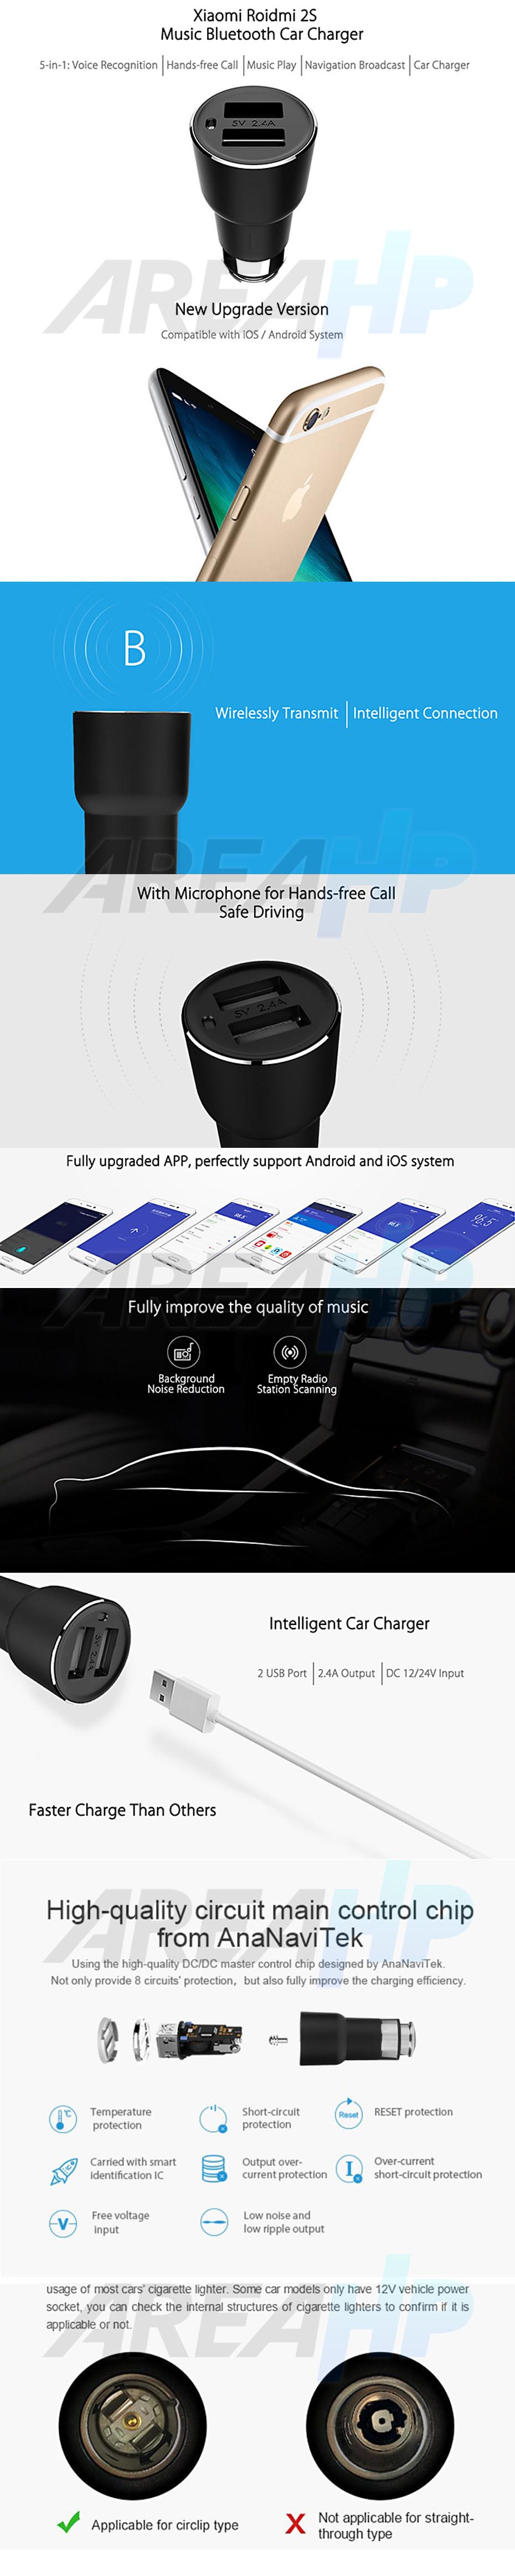 Xiaomi Mi Roidmi 2S Fast Car Charger 2 Slot USB for All Phone, Tablet (Original) Overview